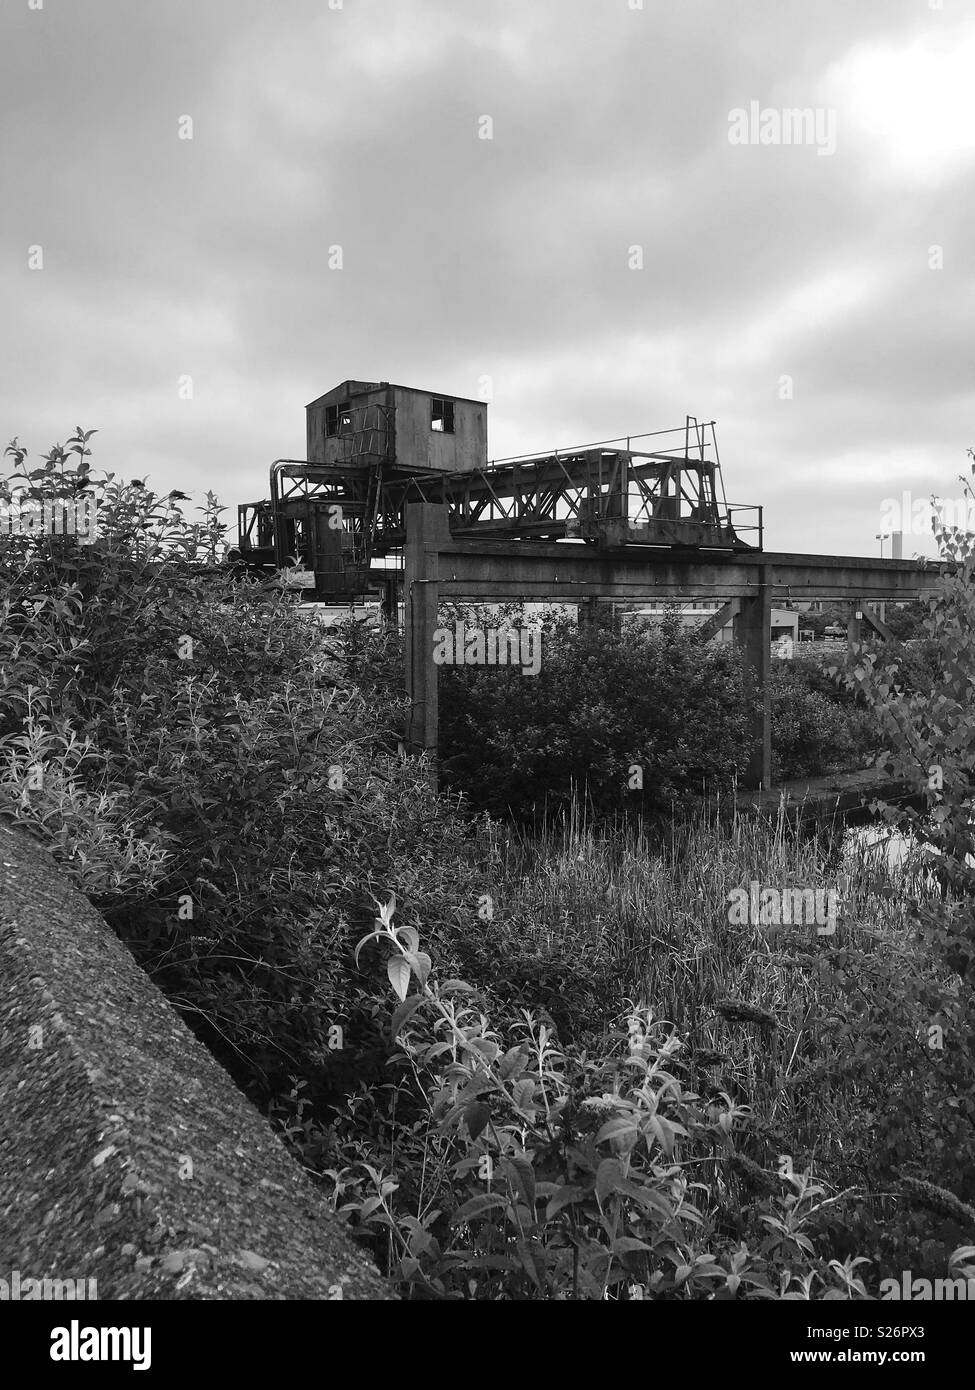 View of a boat yard along the towpath. - Stock Image